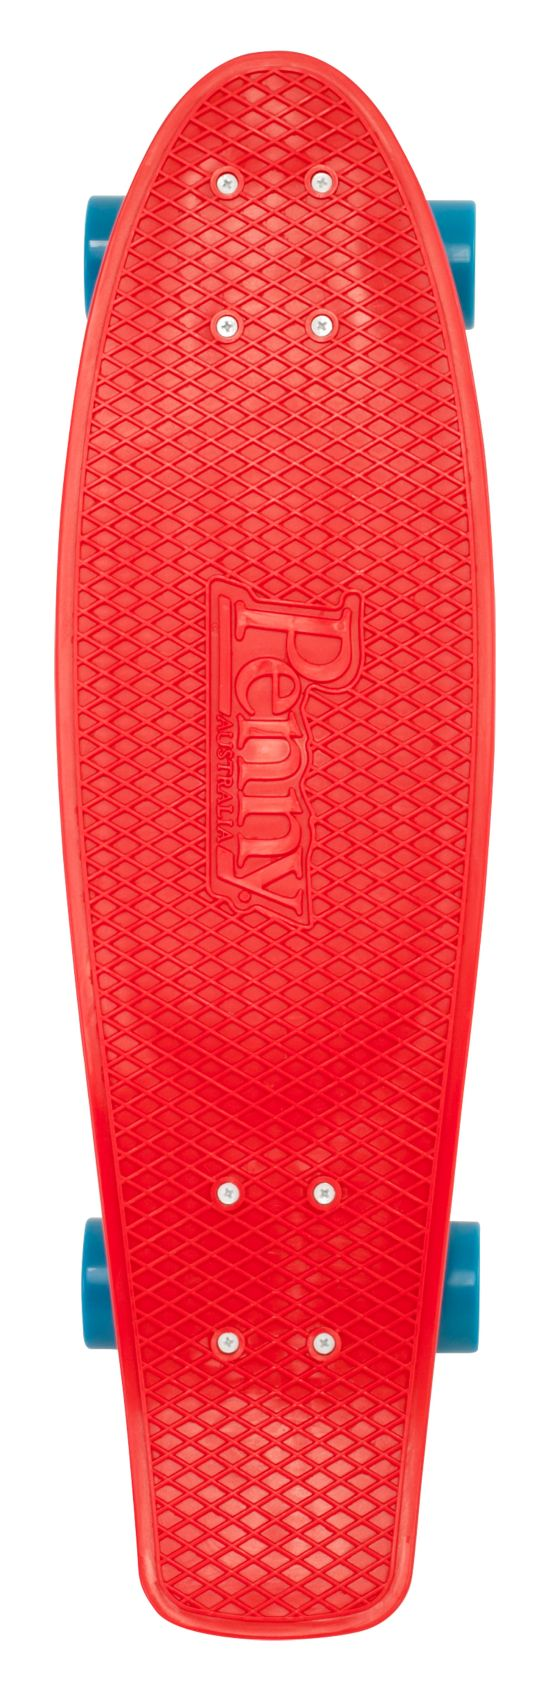 "Nickel 27"" Skateboard RED"